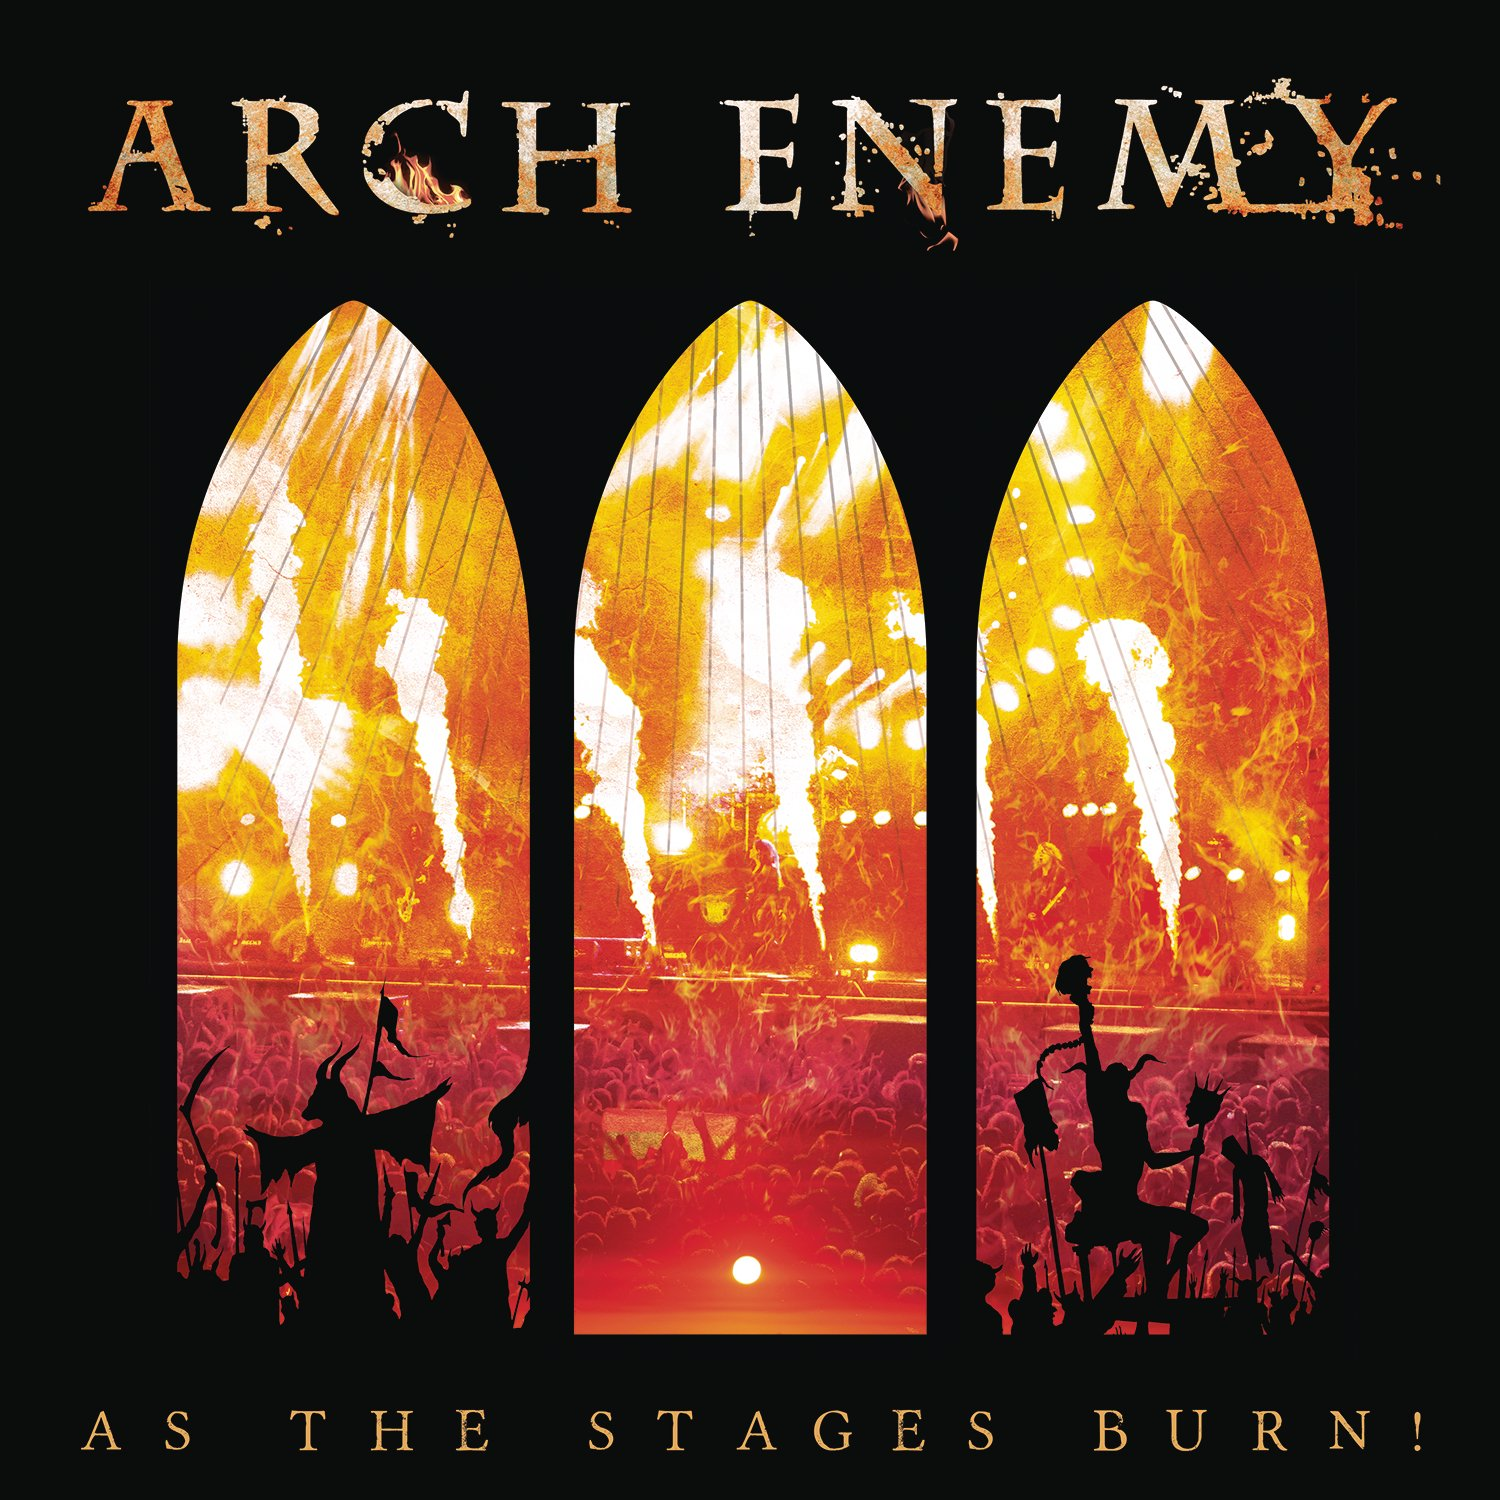 CD : Arch Enemy - As The Stages Burn! (Limited Edition, With DVD, Digipack Packaging, 2 Disc)